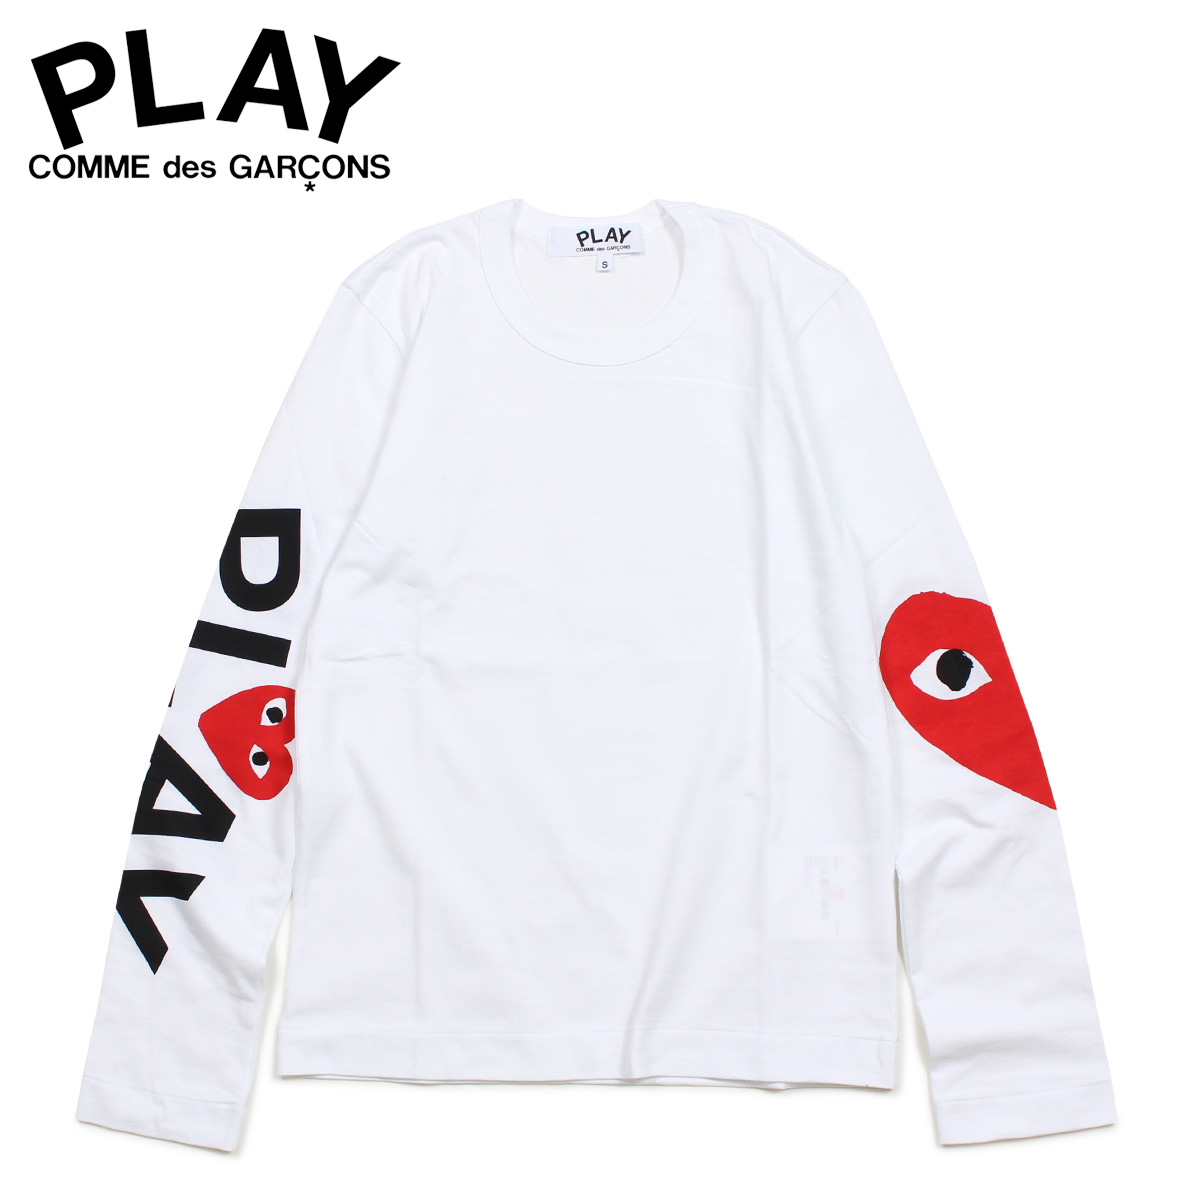 PLAY COMME des GARCONS RED HEART LONG SLEEVE コムデギャルソン Tシャツ レディース 長袖 ロンT ホワイト 白 AZ-T257 [3/29 新入荷]